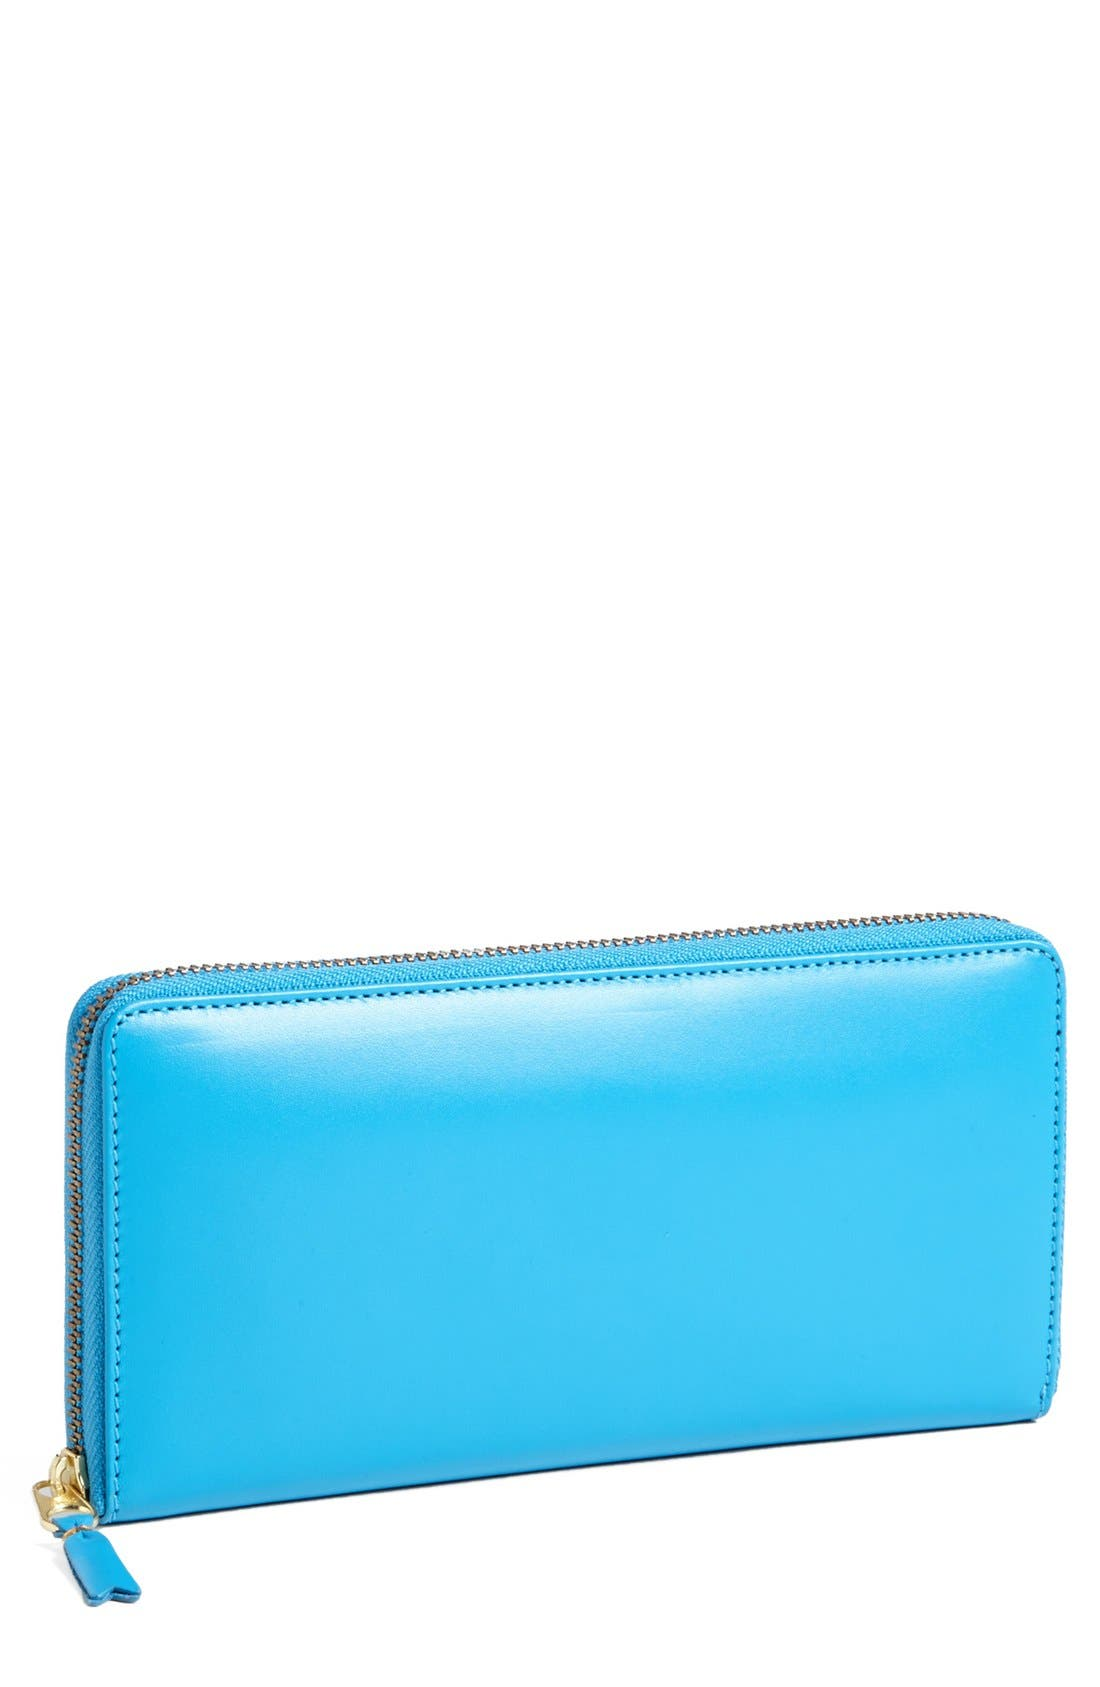 COMME DES GARÇONS, Continental Long Wallet, Main thumbnail 1, color, BLUE